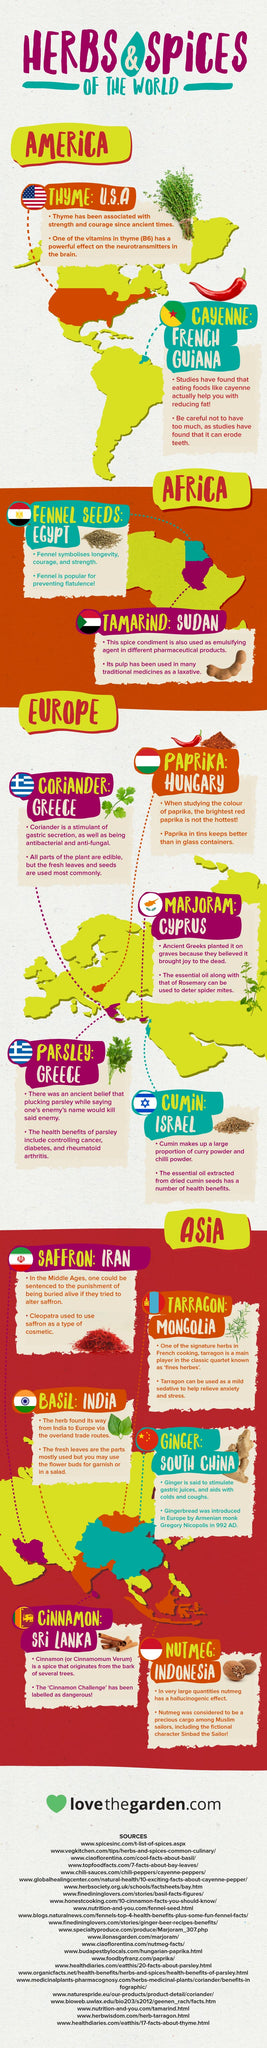 Herbs and Spices Infographic